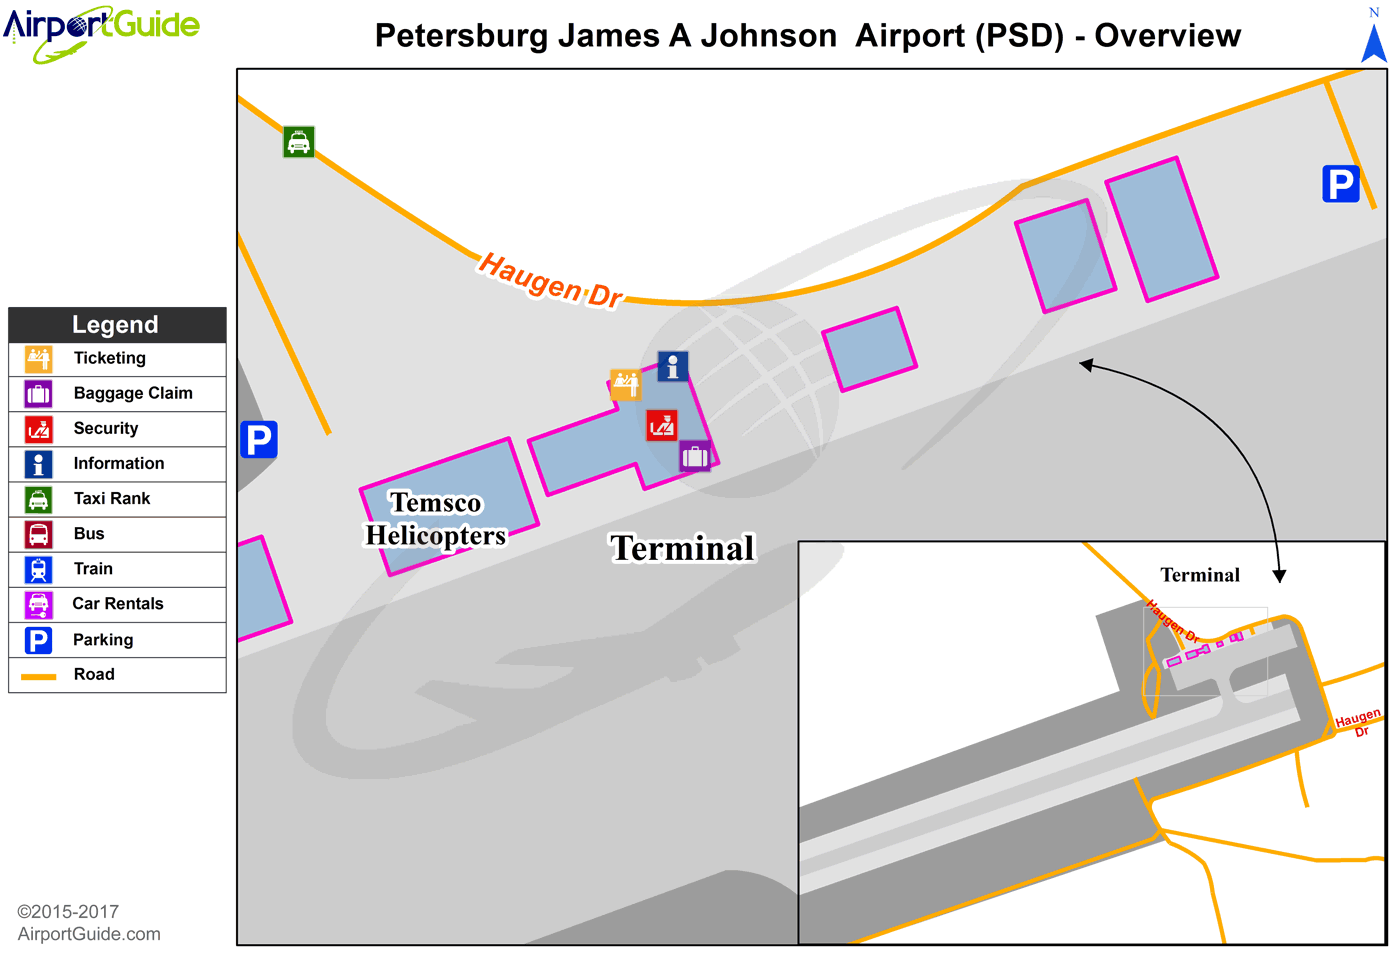 Petersburg - Petersburg James A Johnson (PSG) Airport Terminal Map - Overview